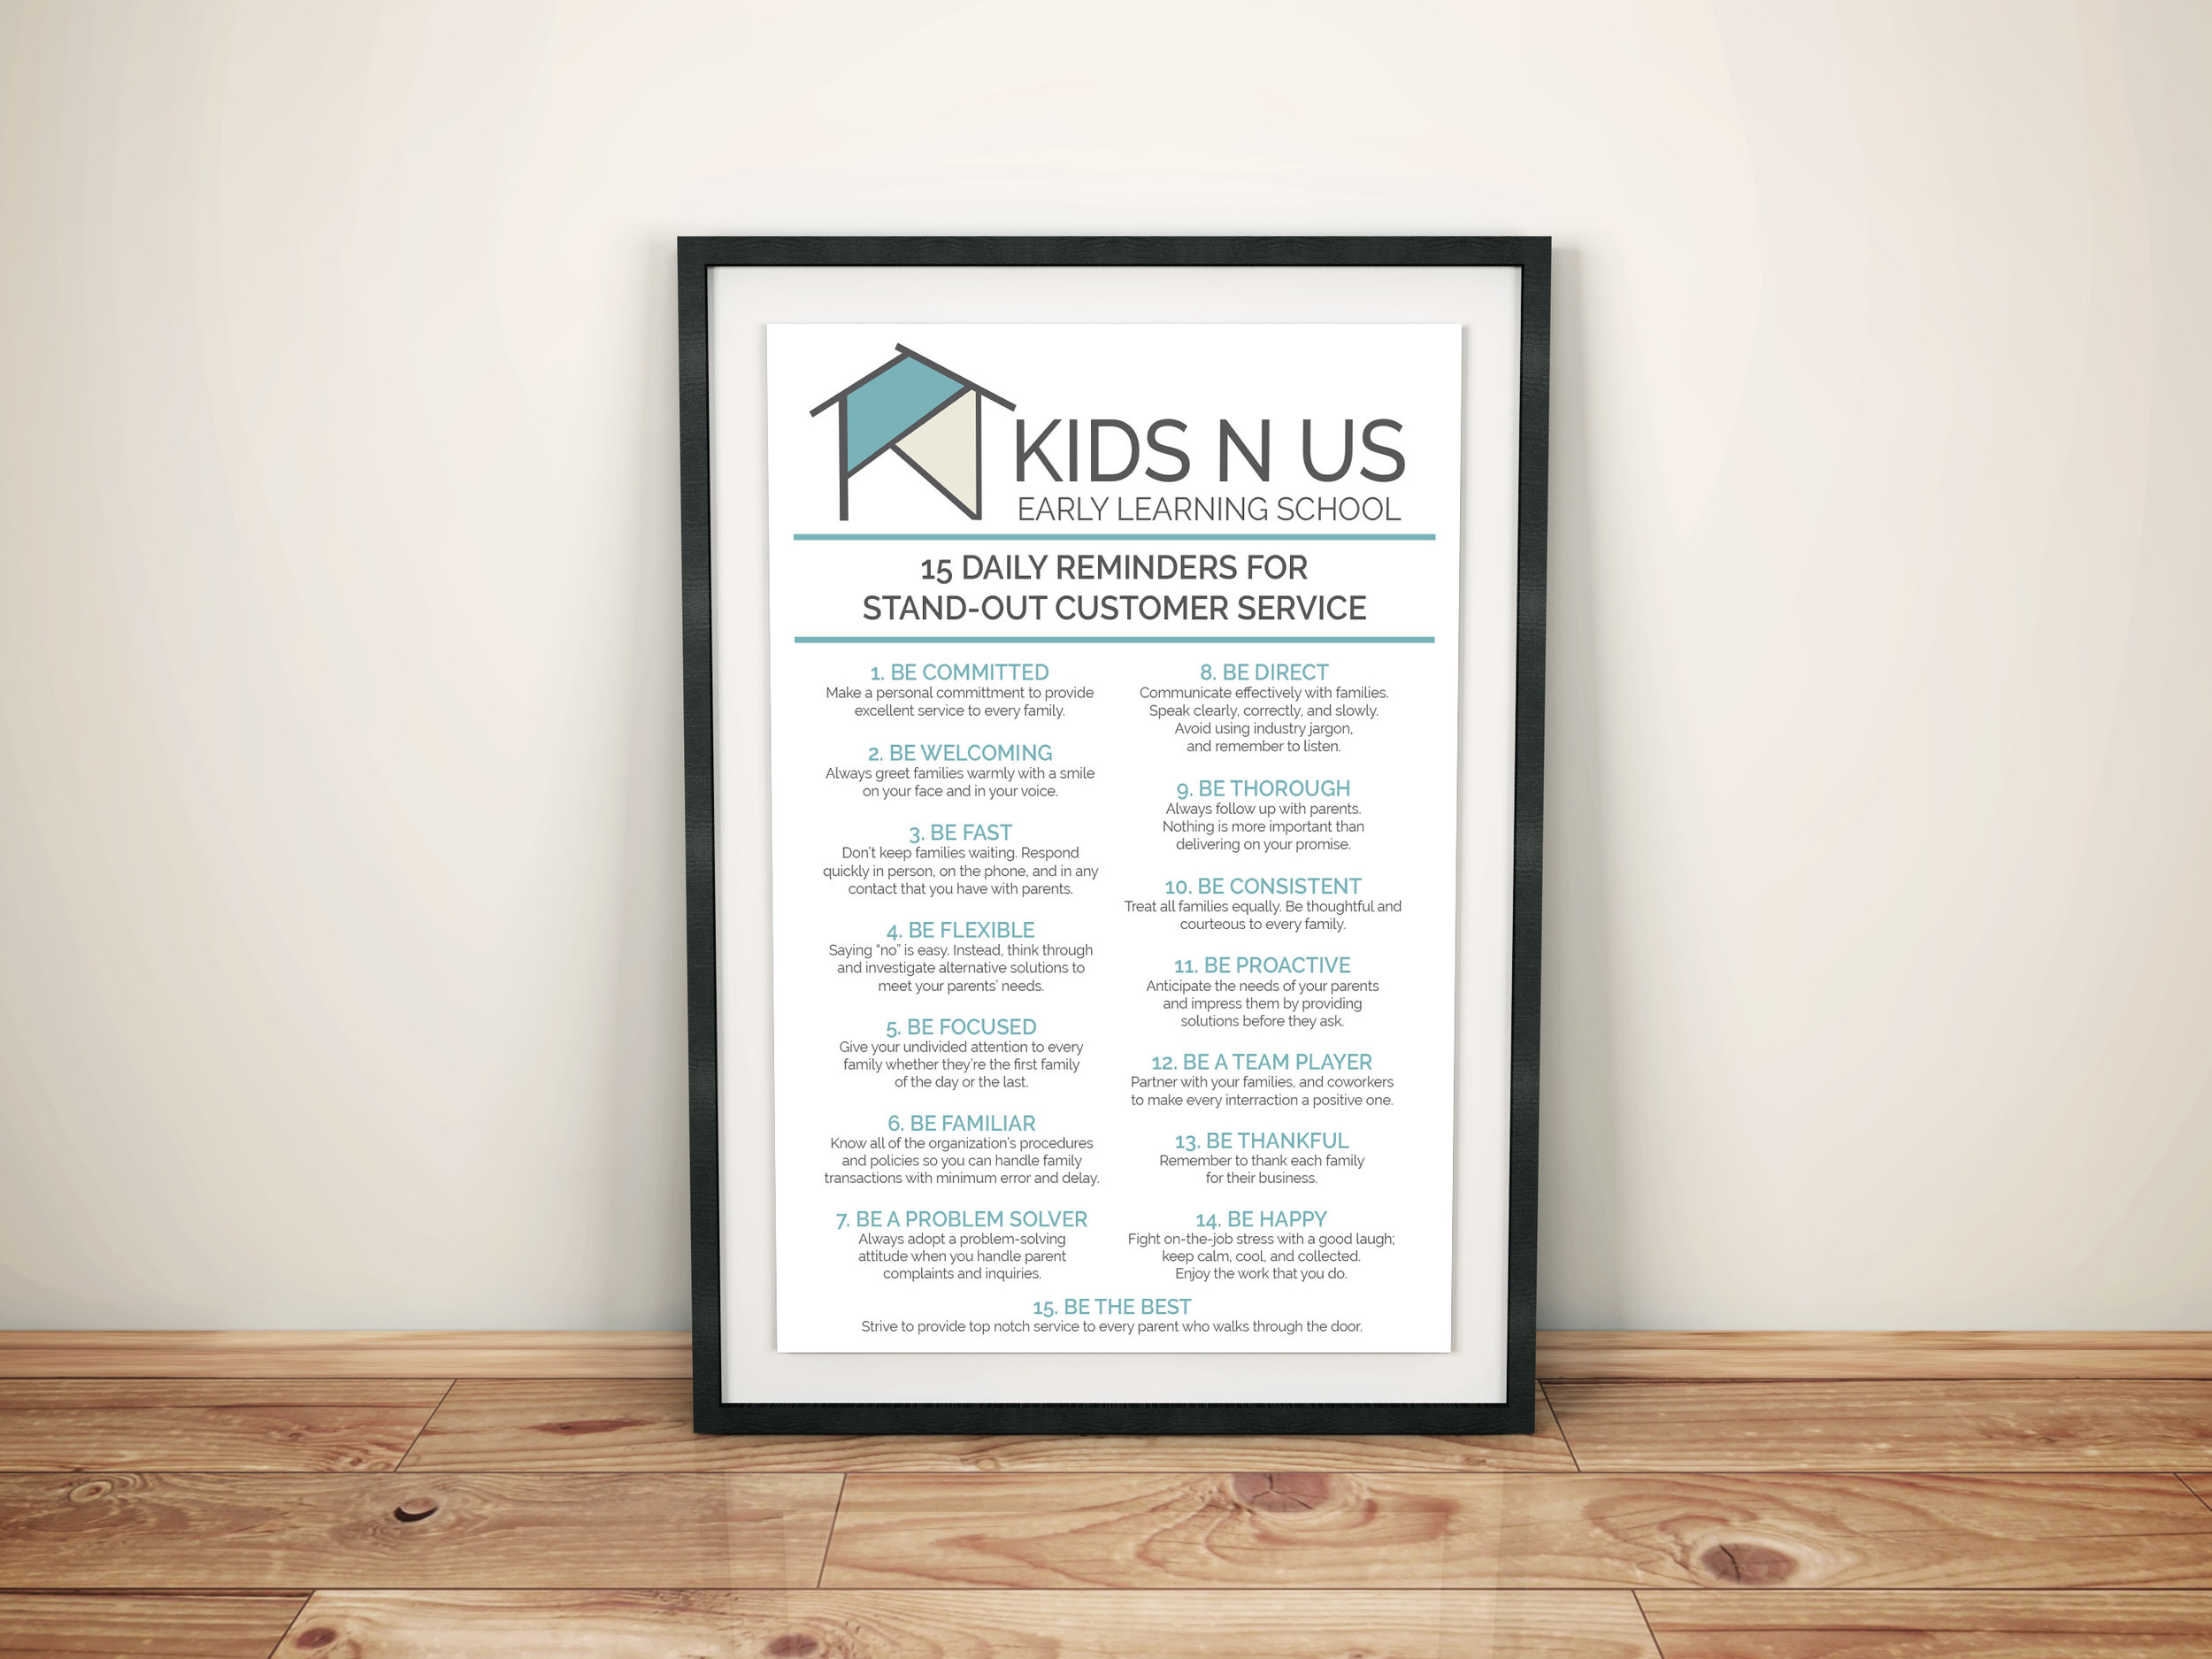 Kids N Us // poster template created for use with in-house designs and announcements.